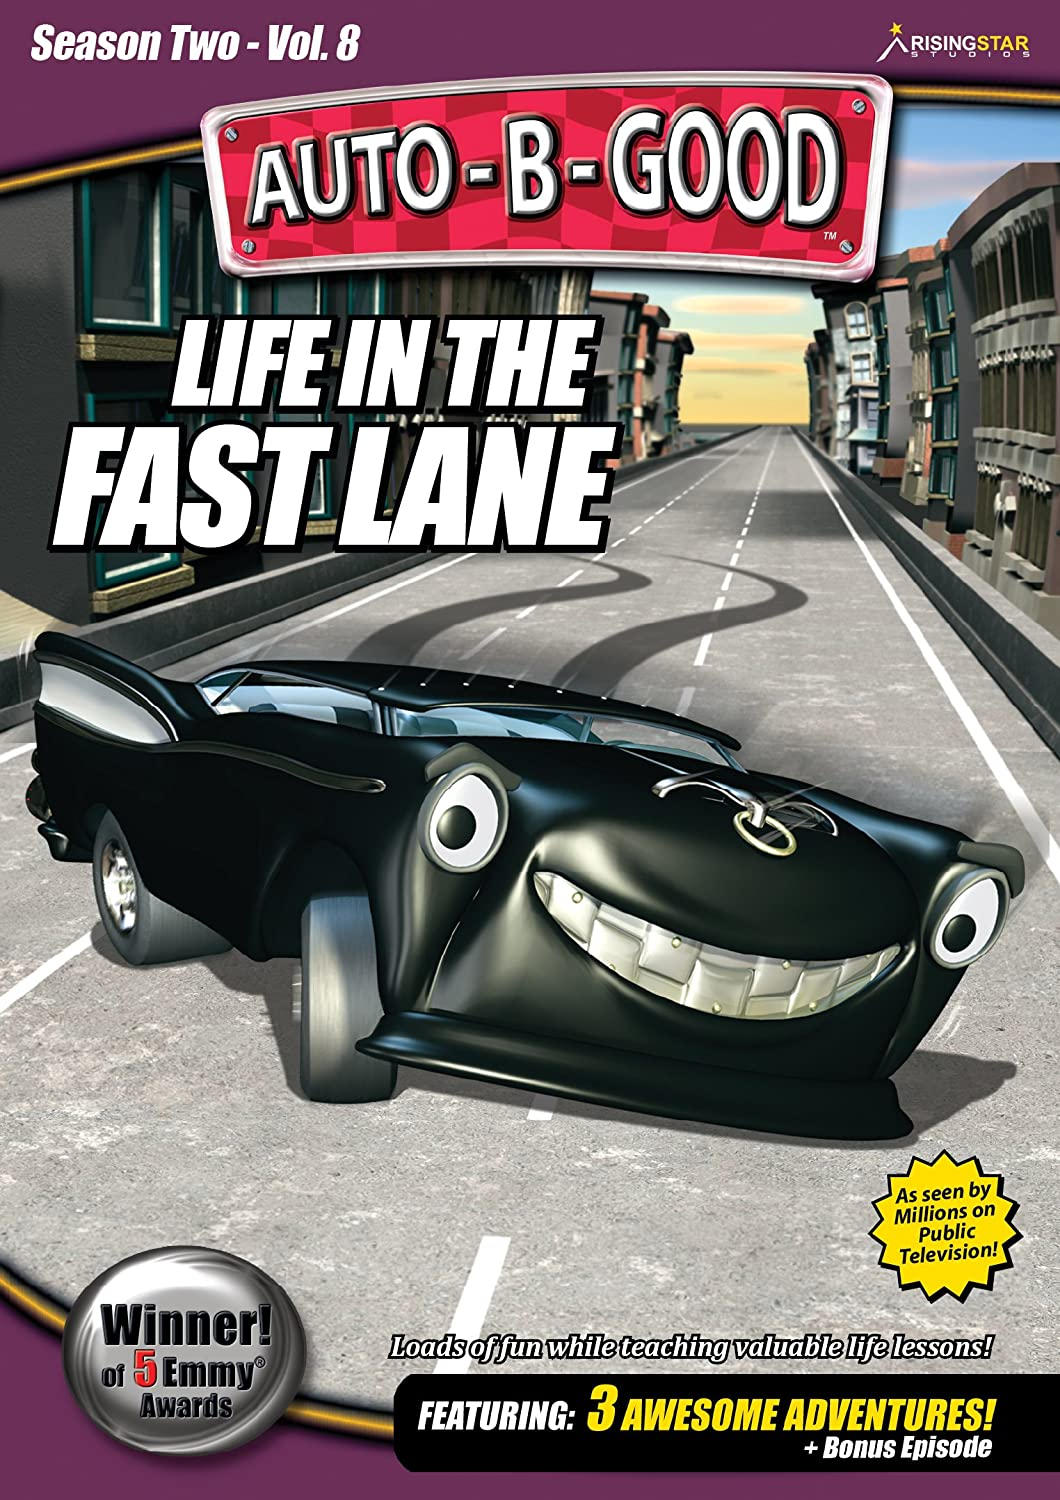 Amazon.com: Auto-B-Good: Life in the Fast Lane (DVD): Dave Simmons ...